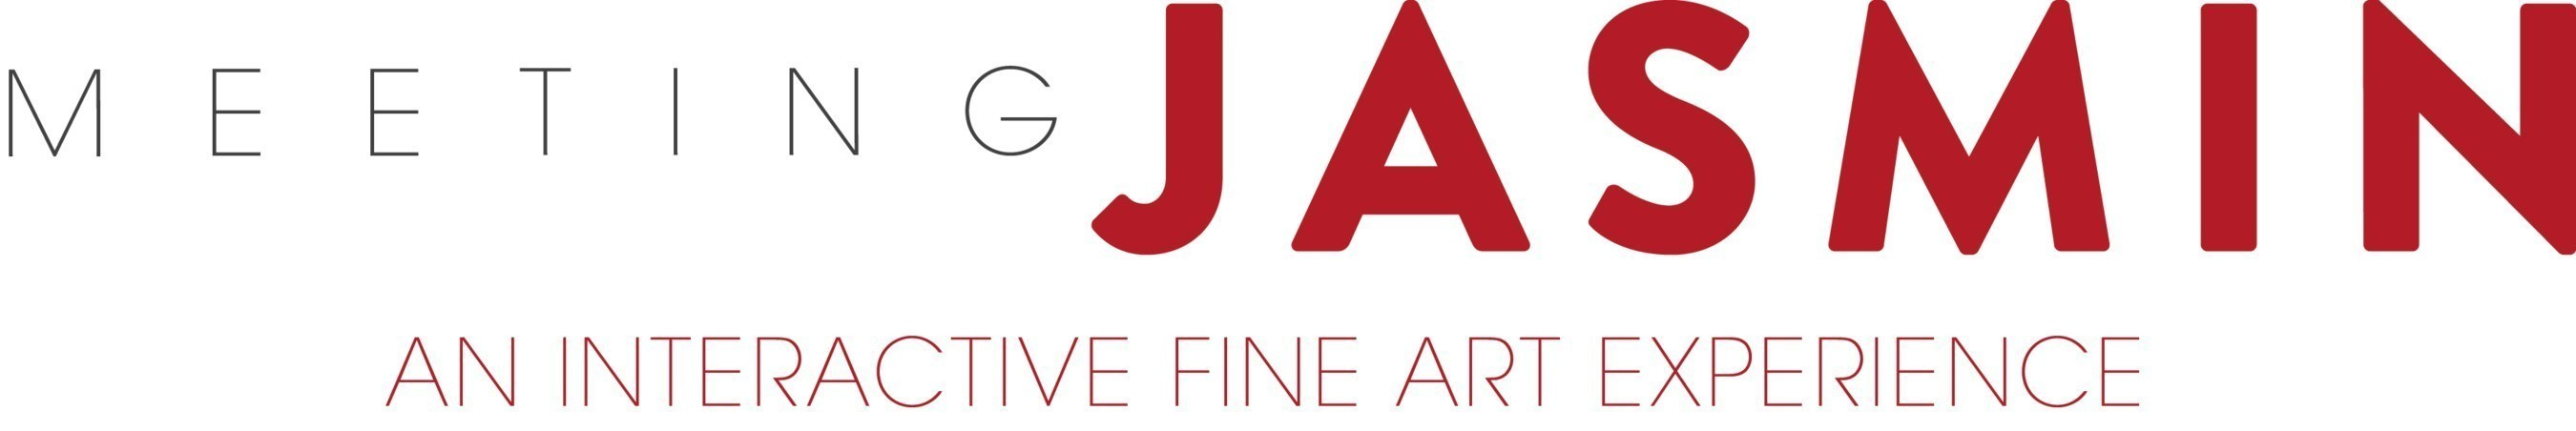 """Meeting JASMIN is an interactive fine art exhibition enhanced with the addition of augmented reality to bring select artworks """"to life"""" with unique, curated content."""